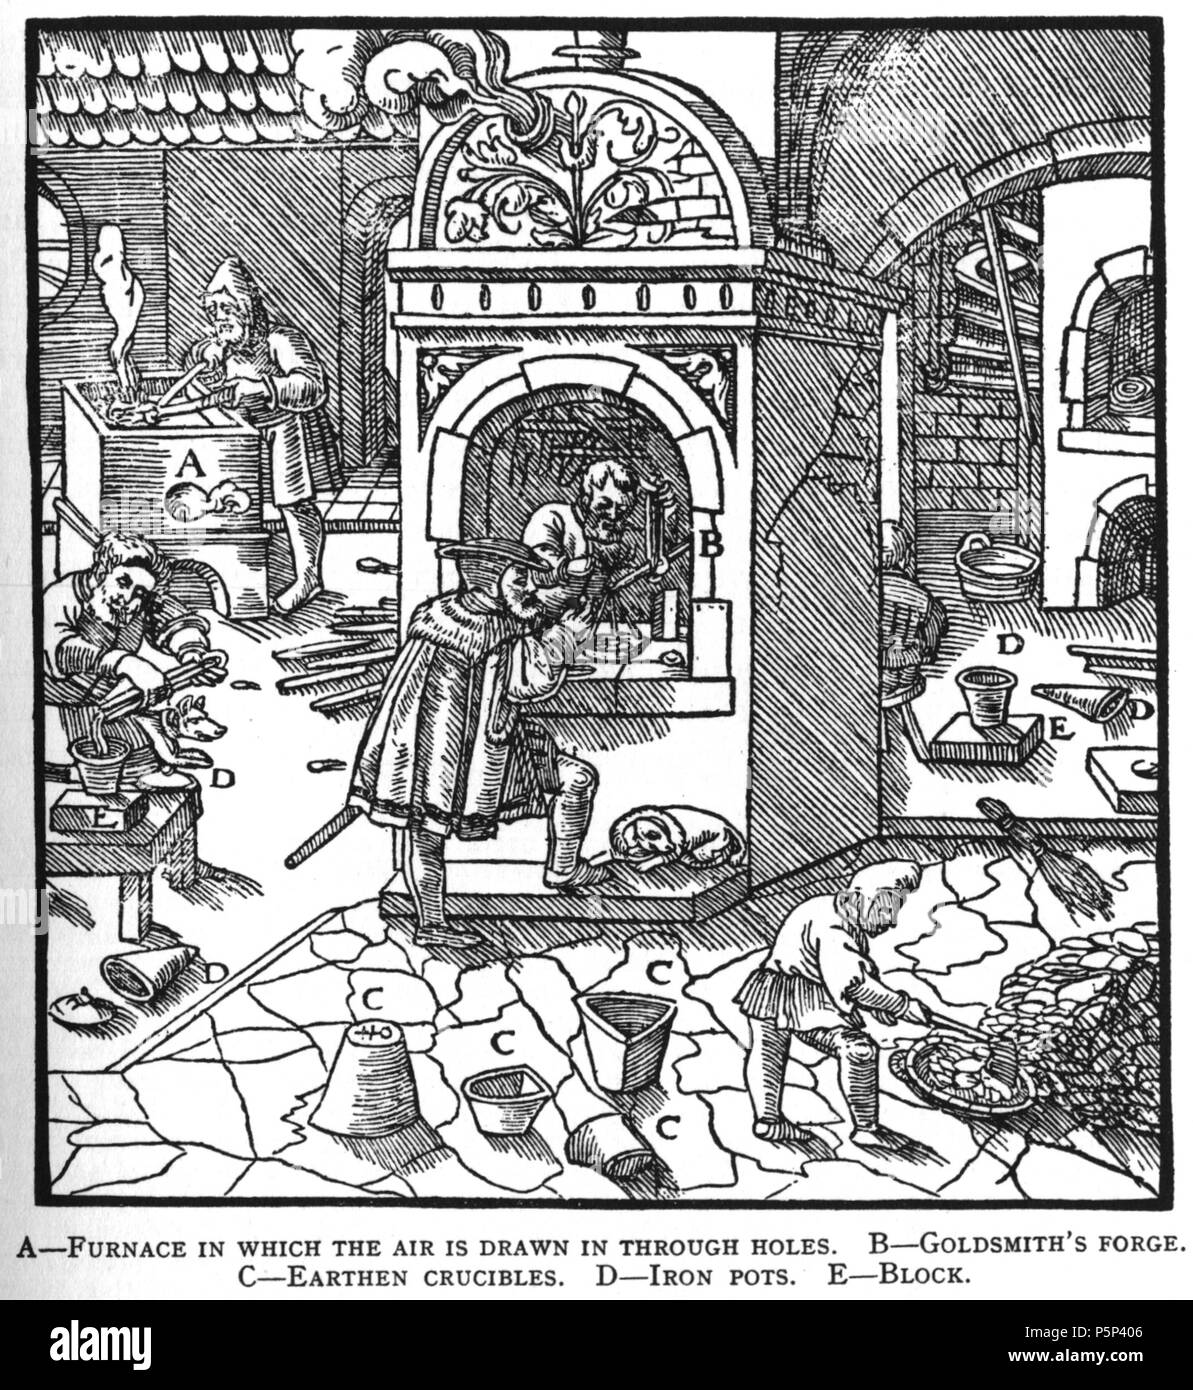 N/A. Woodcut illustration from De re metallica by Georgius Agricola. This is a 300dpi scan from the 1950 Dover edition of the 1913 Hoover translation of the 1556 reference. The Dover edition has slightly smaller size prints than the Hoover (which is a rare book). The woodcuts were recreated for the 1913 printing. Filenames (except for the title page) indicate the chapter (2, 3, 5, etc.) followed by the sequential number of the illustration. 2 May 2005, 06:04:20. TCO (talk) 222 Book10-4 - Stock Image